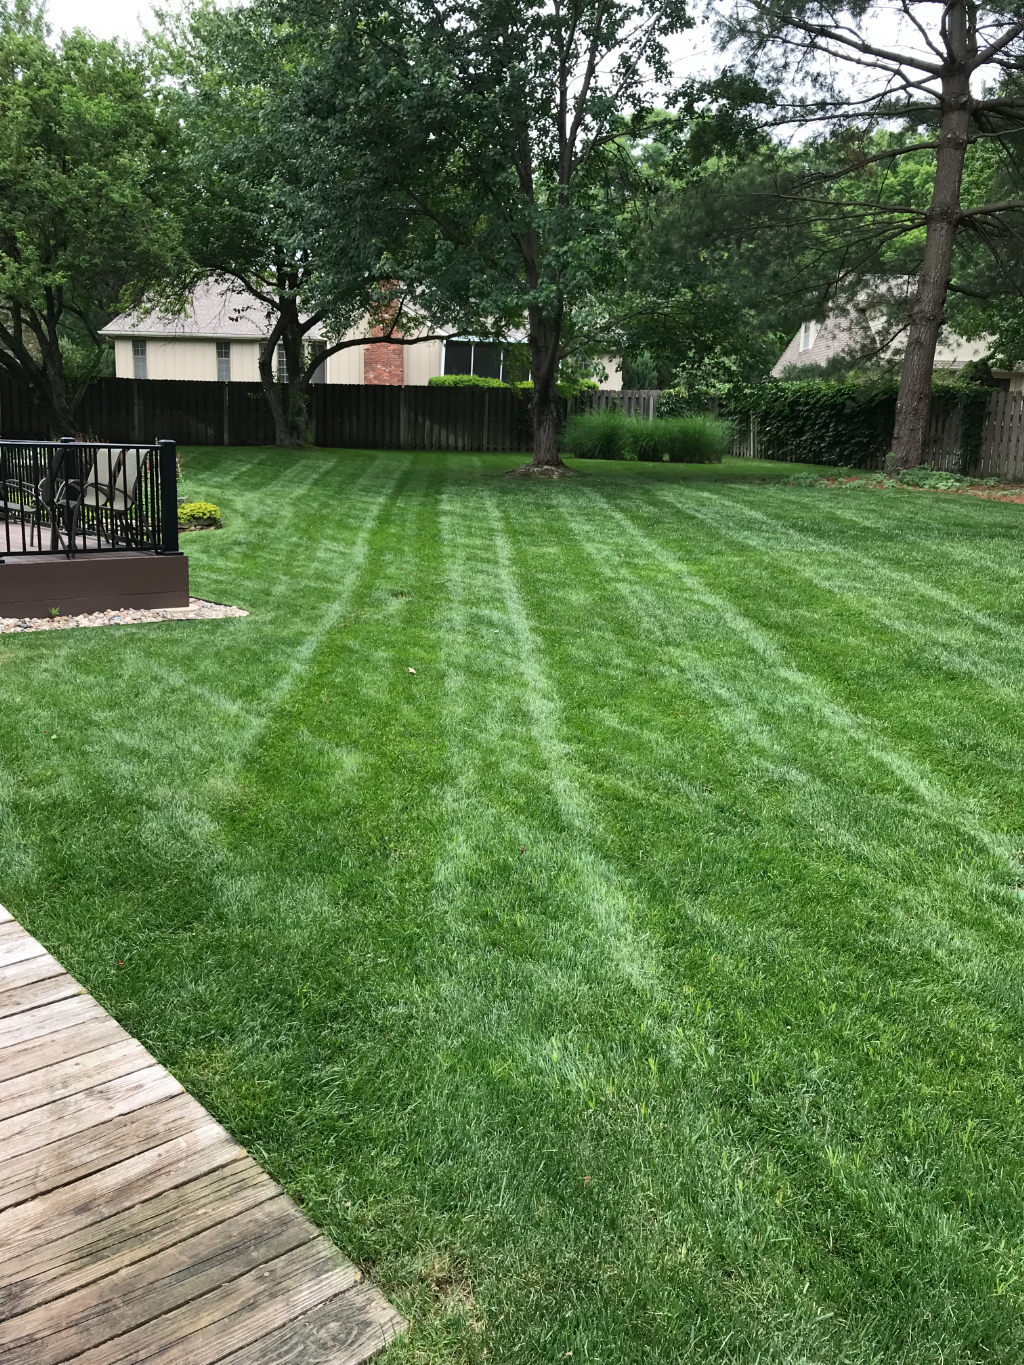 Yard mowing company in Prairie Village, KS, 66207